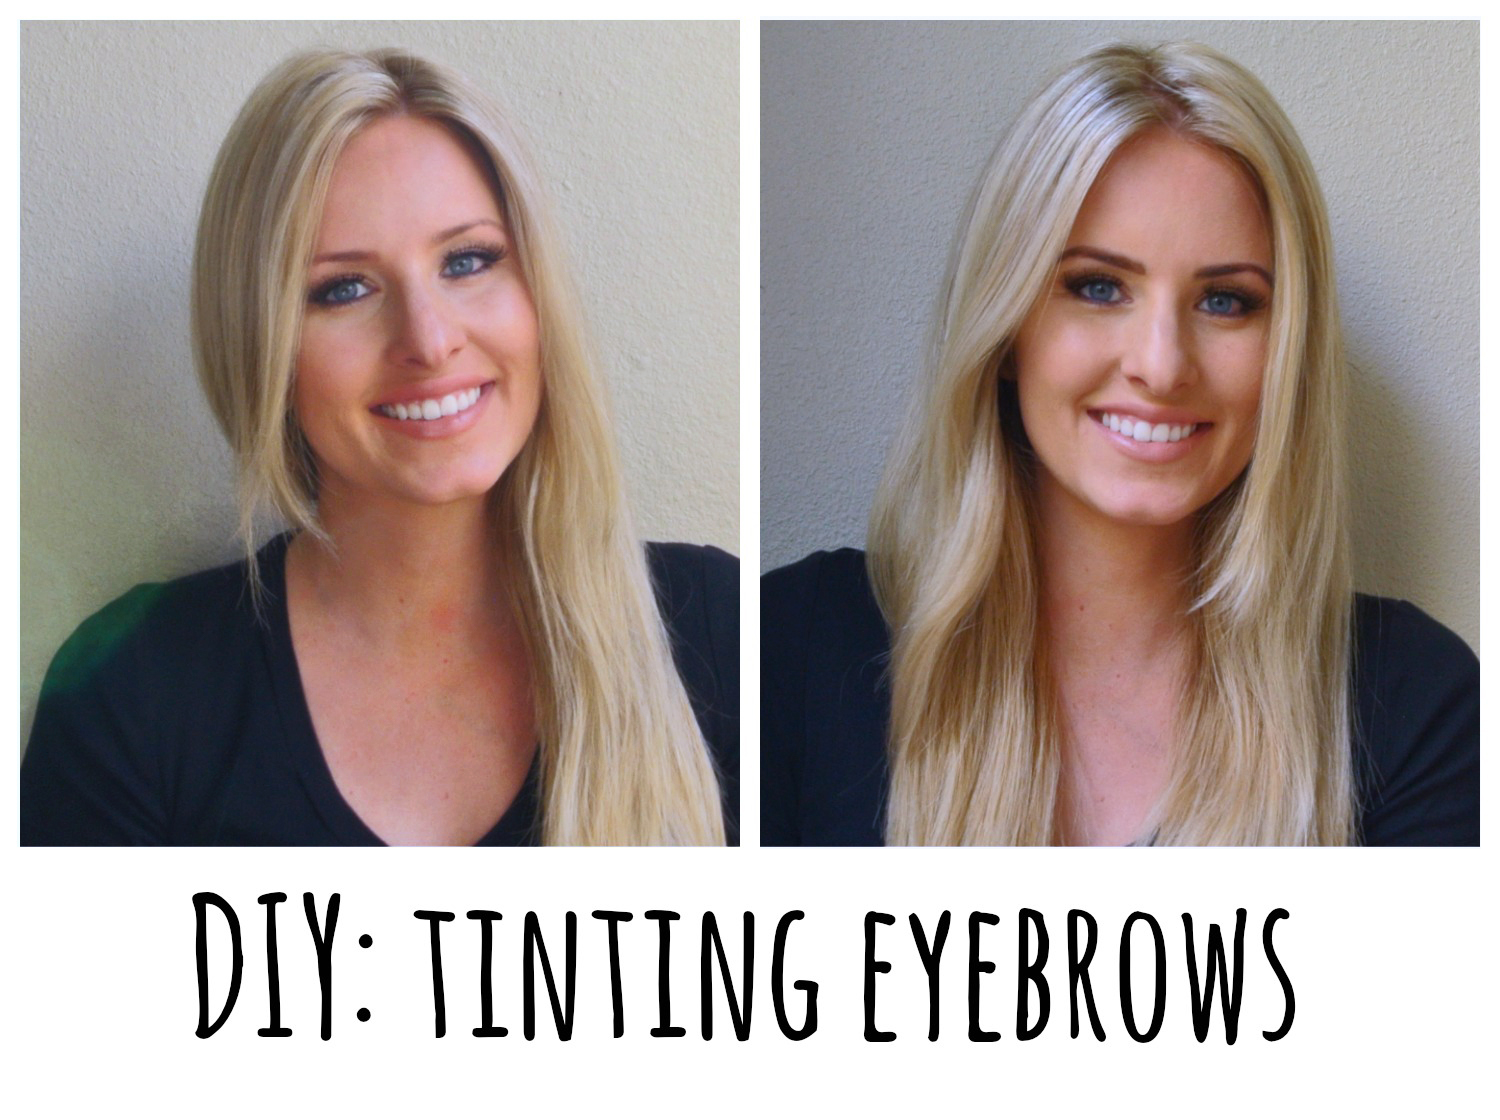 DIY: How to Tint Eyebrows with Refectocil